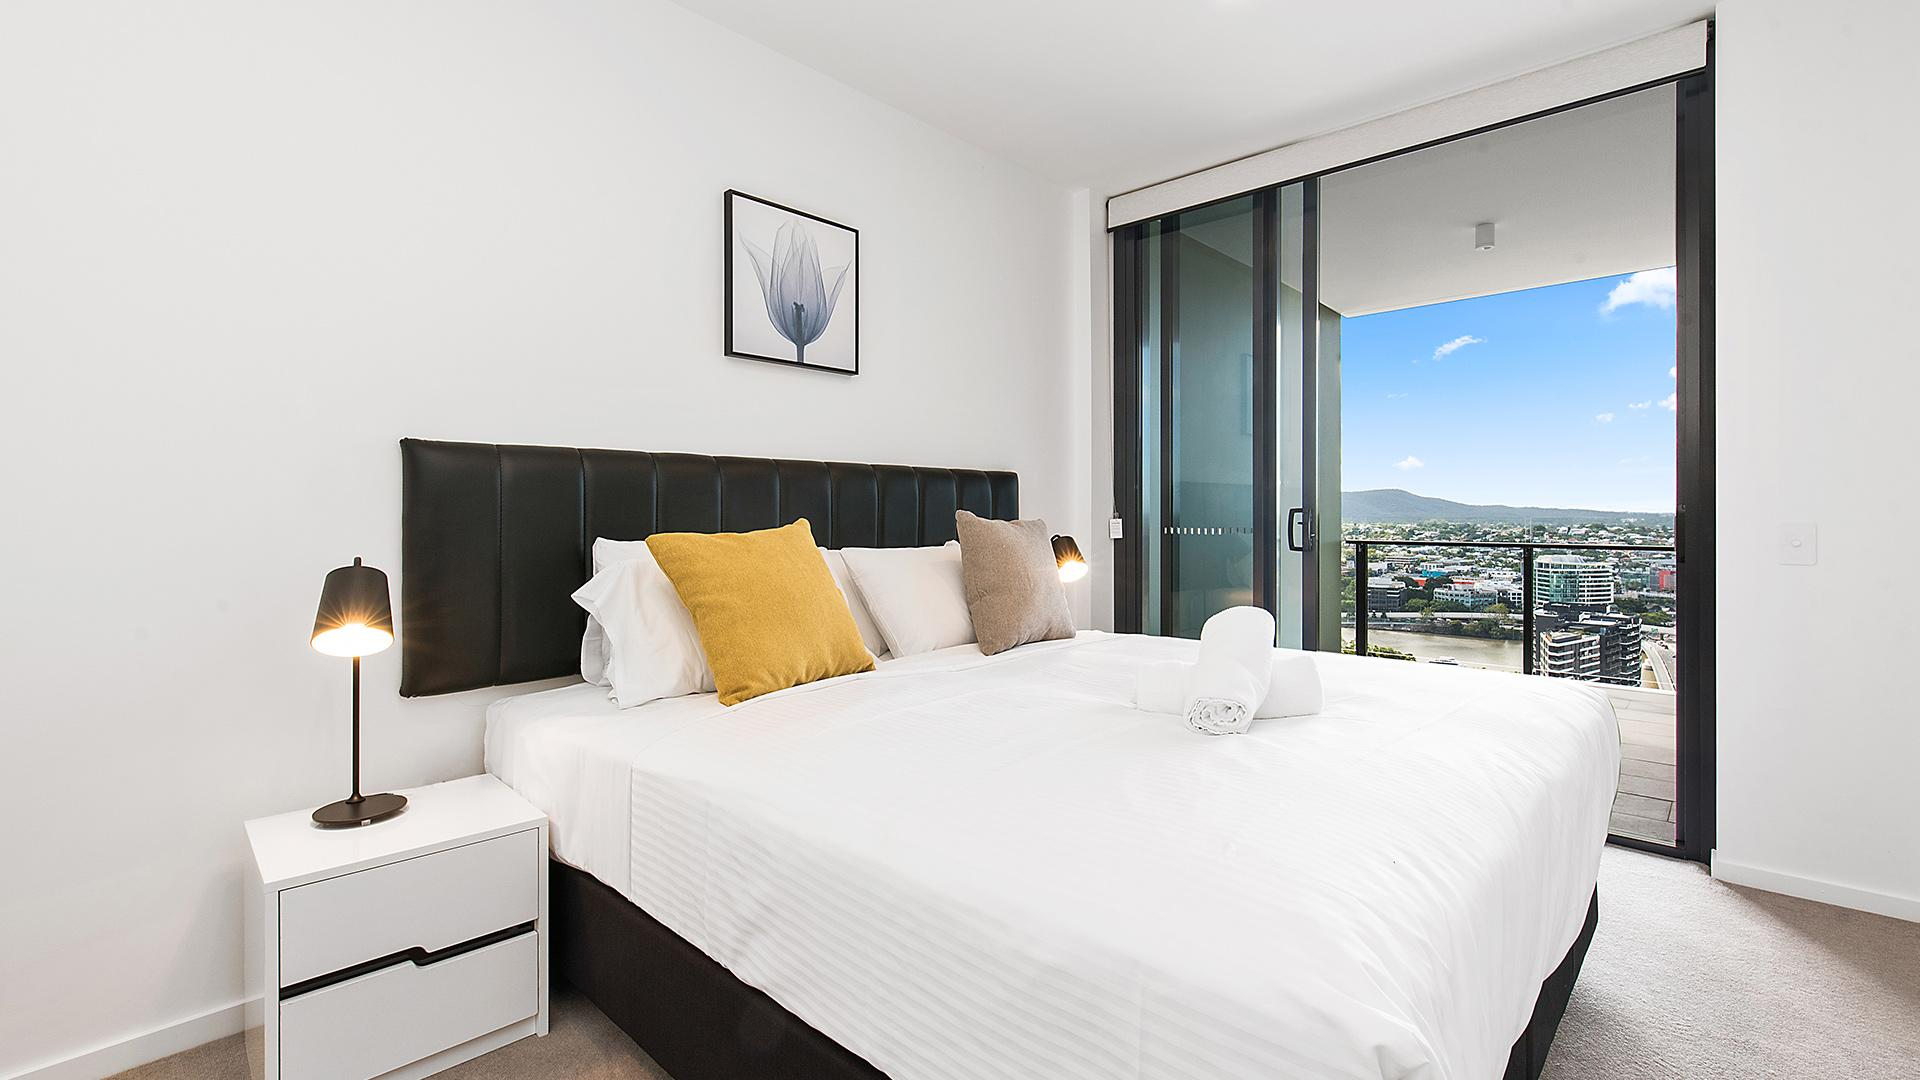 One-Bedroom Apartment image 1 at Arise Ivy & Eve Apartments by Brisbane City, Queensland, Australia